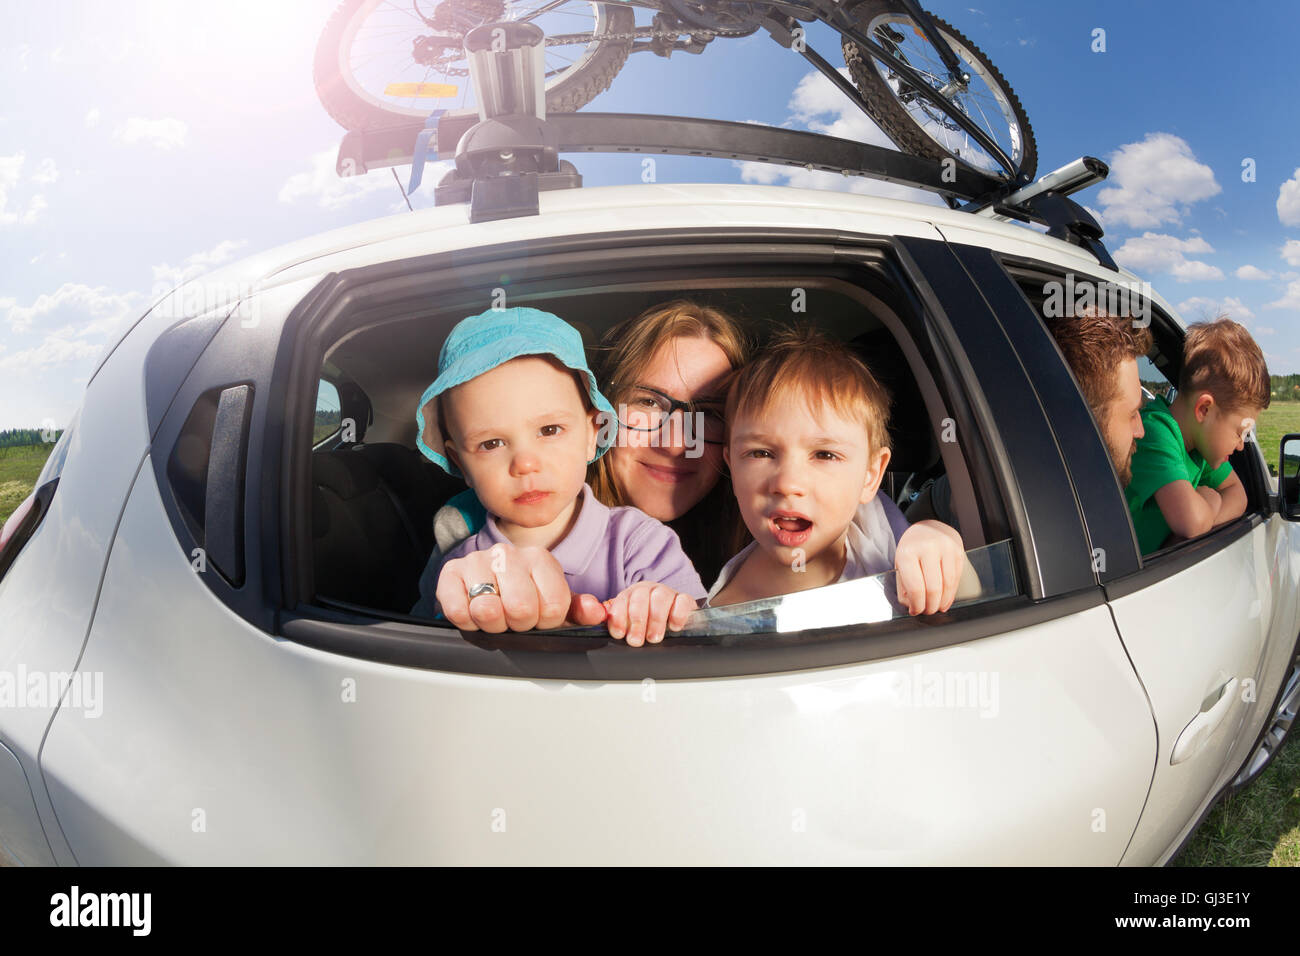 Big happy family going on vacation trip in summer - Stock Image